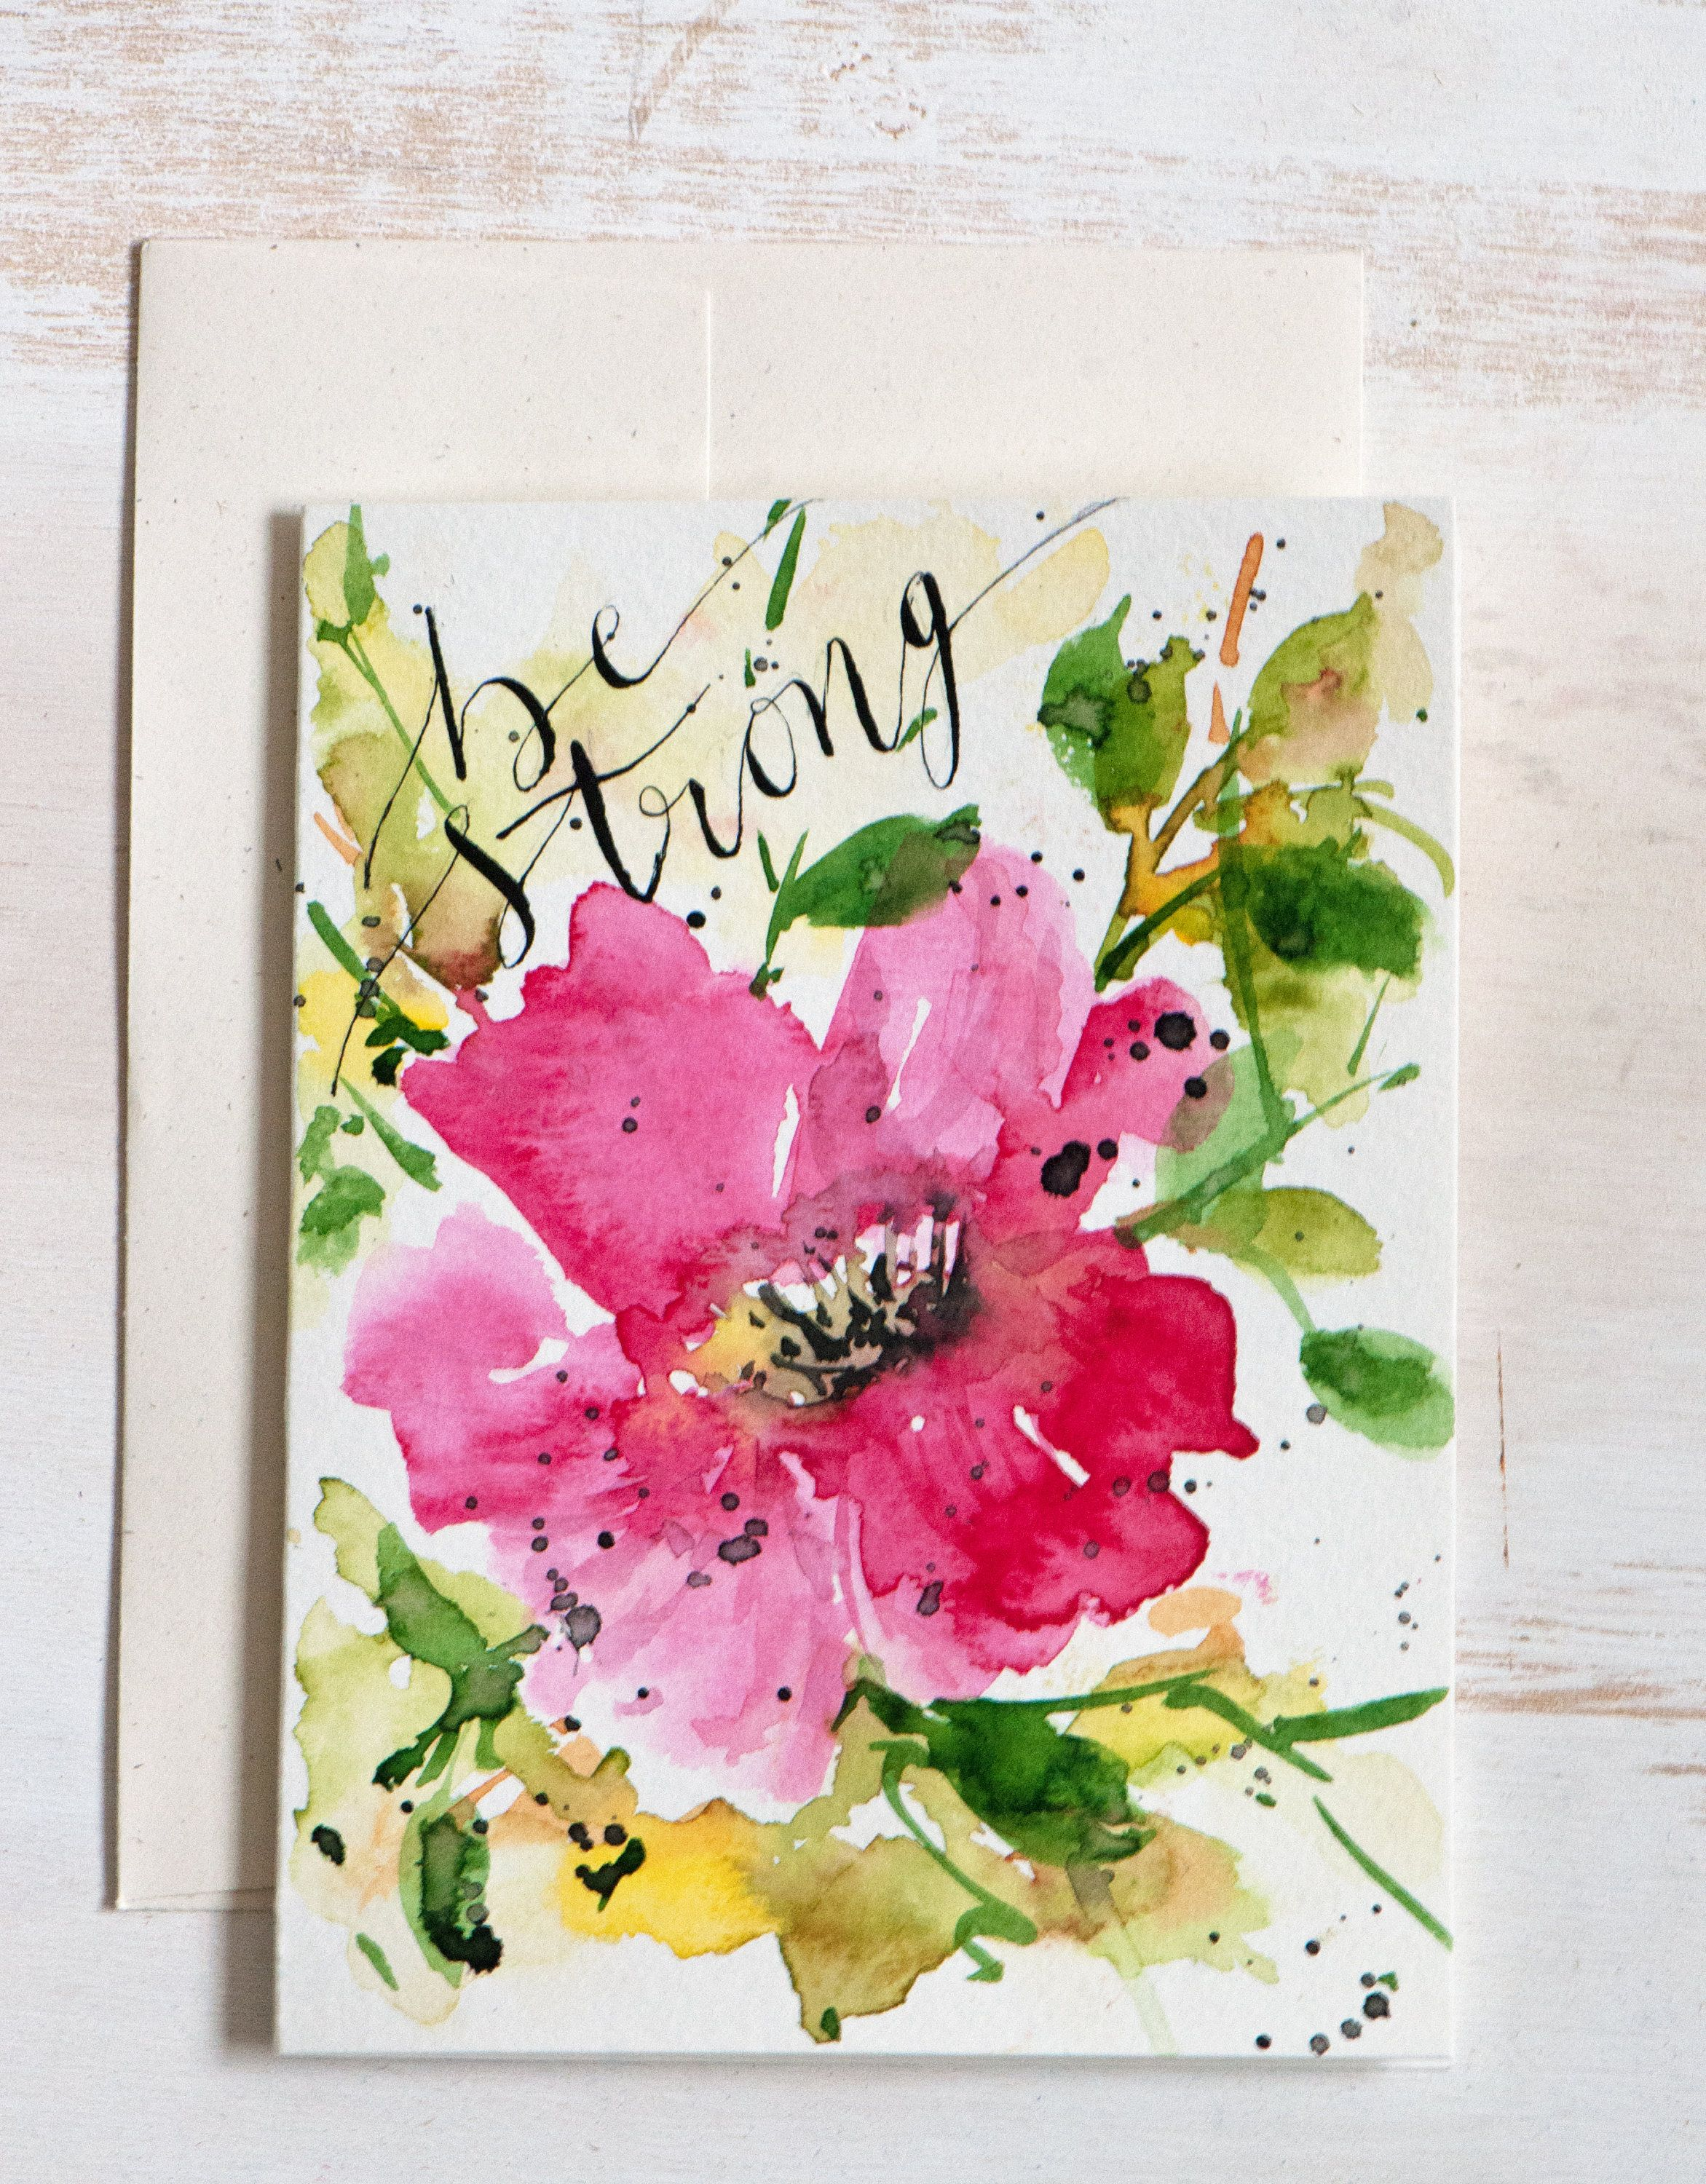 Be strong watercolor greeting card hand painted card be strong watercolor greeting card hand painted card inspirational card motivational card kristyandbryce Images